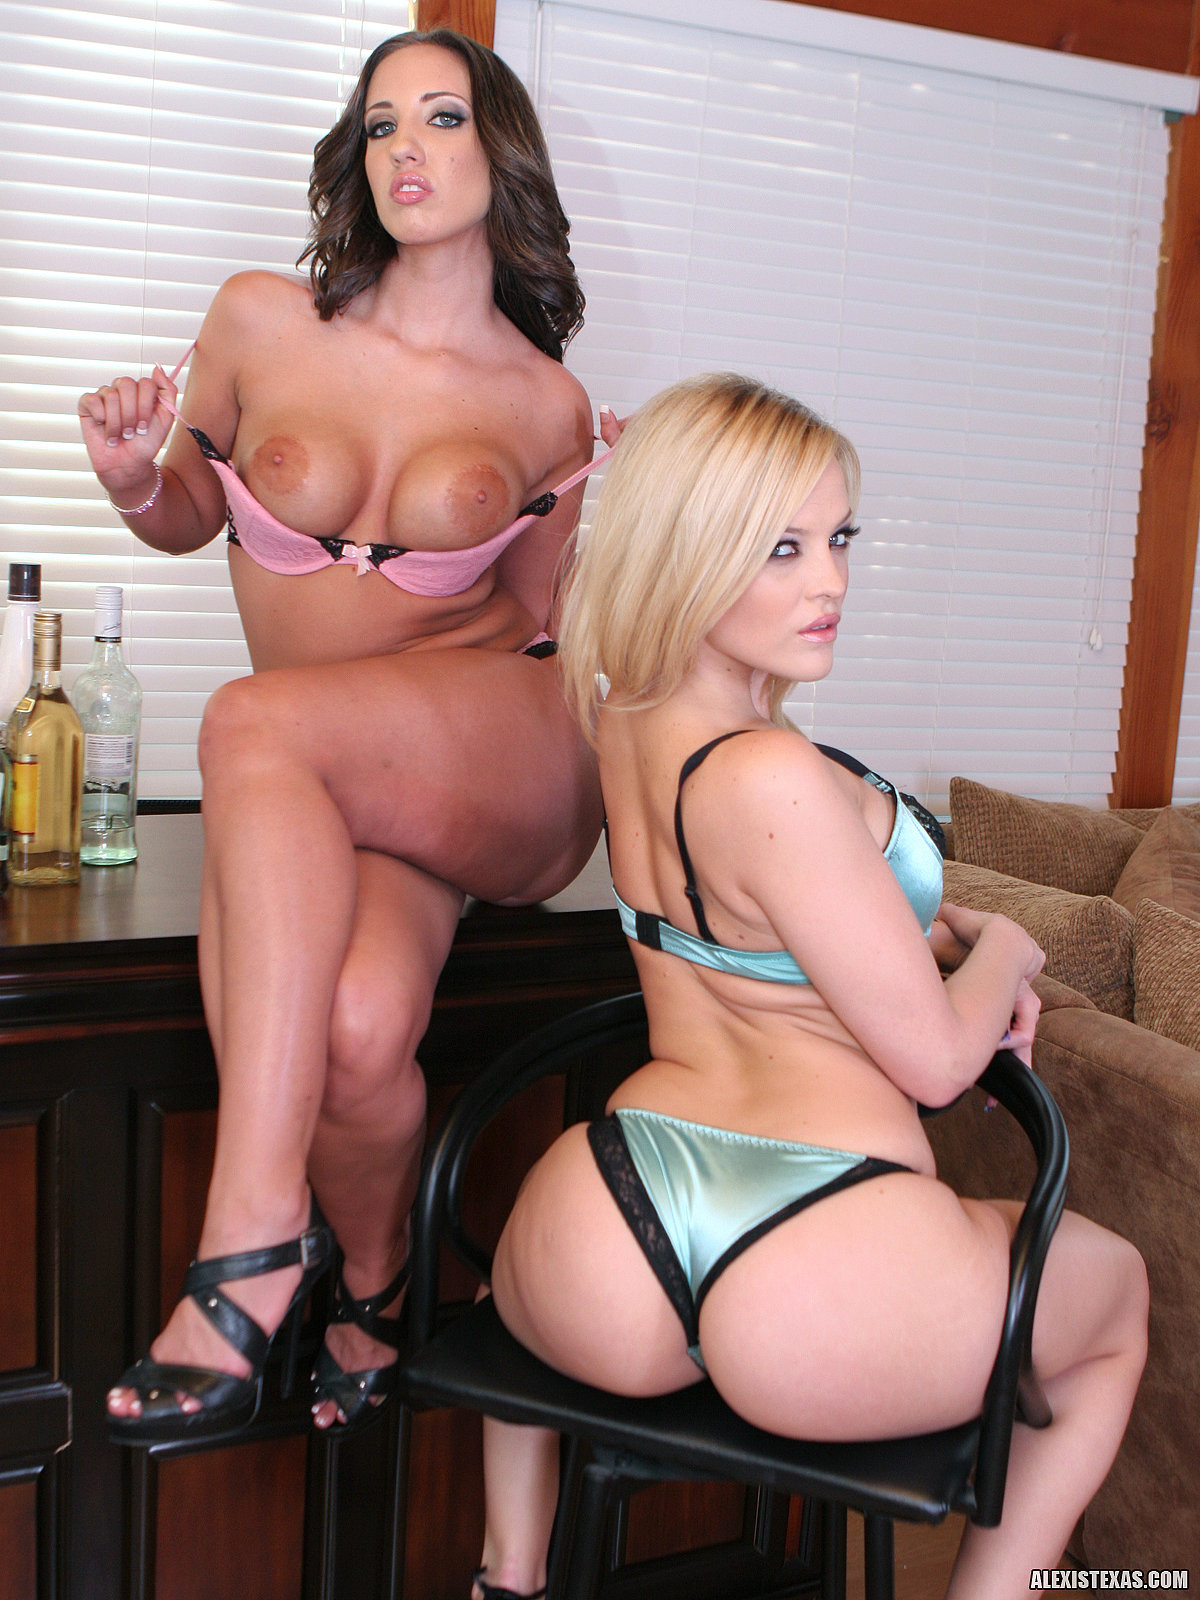 Kelly divine and alexis texas